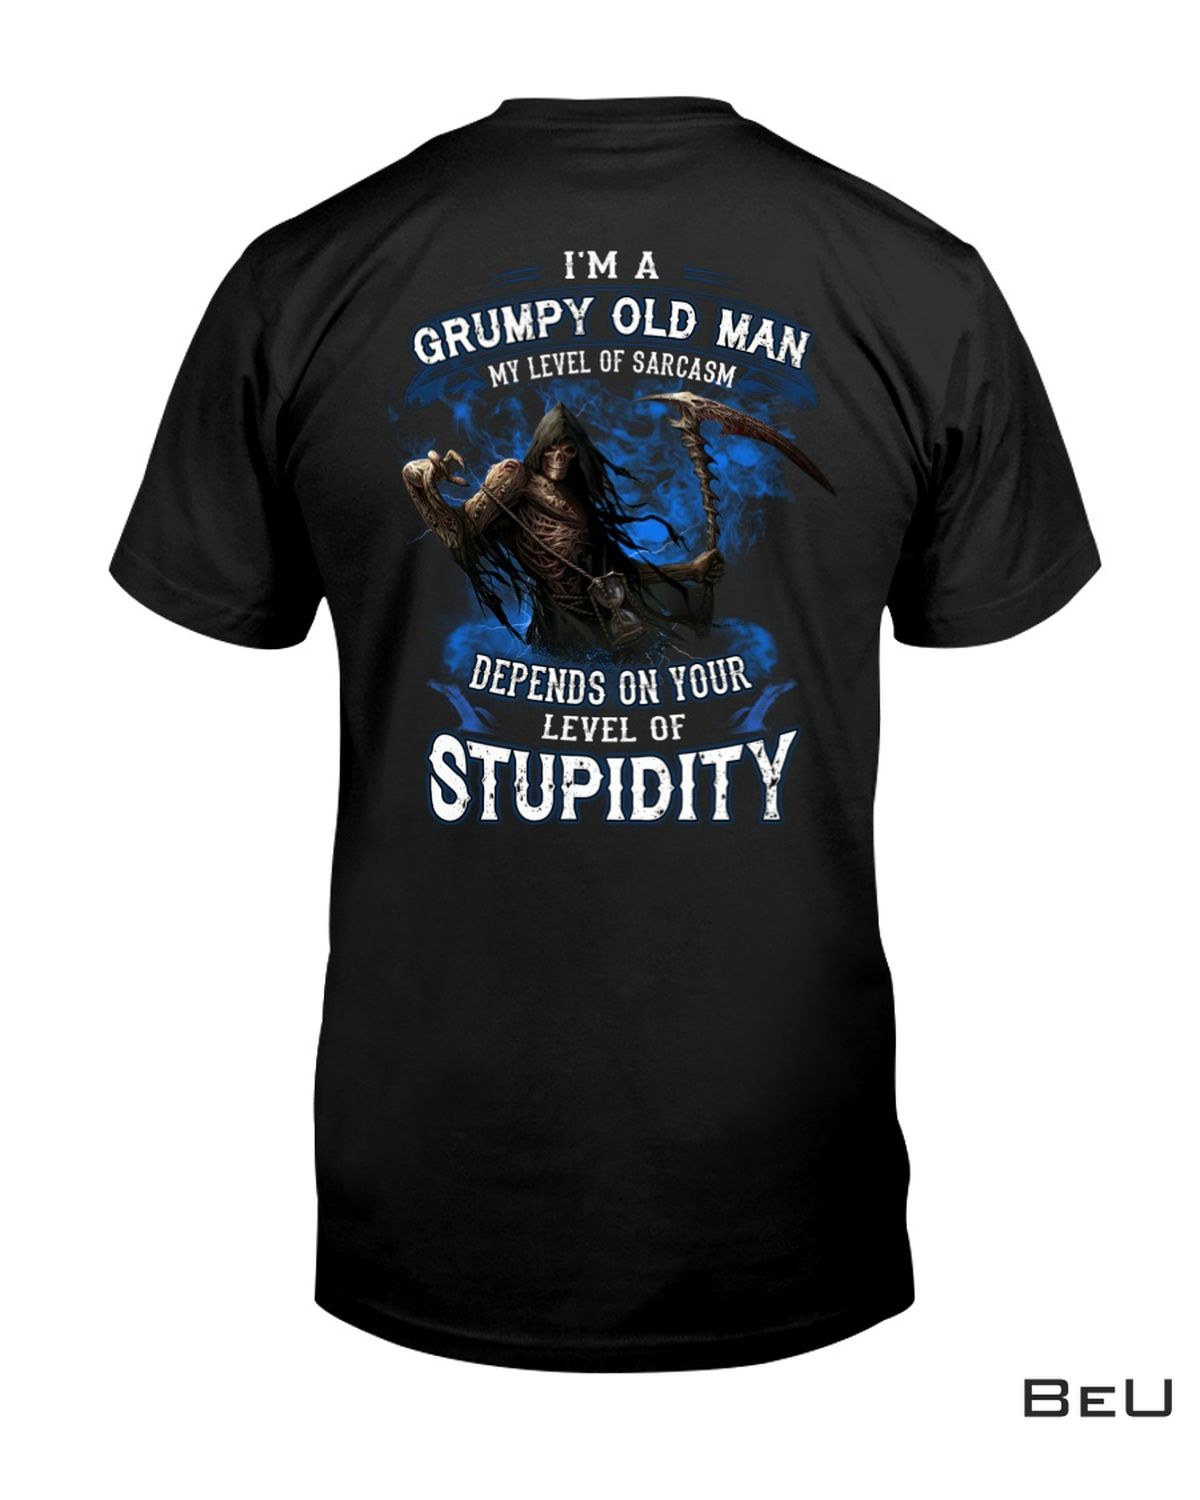 I'm A Grumpy Old Man My Level Of Sarcasm Depends On Your Level Of Stupidity Shirt, hoodie, tank top